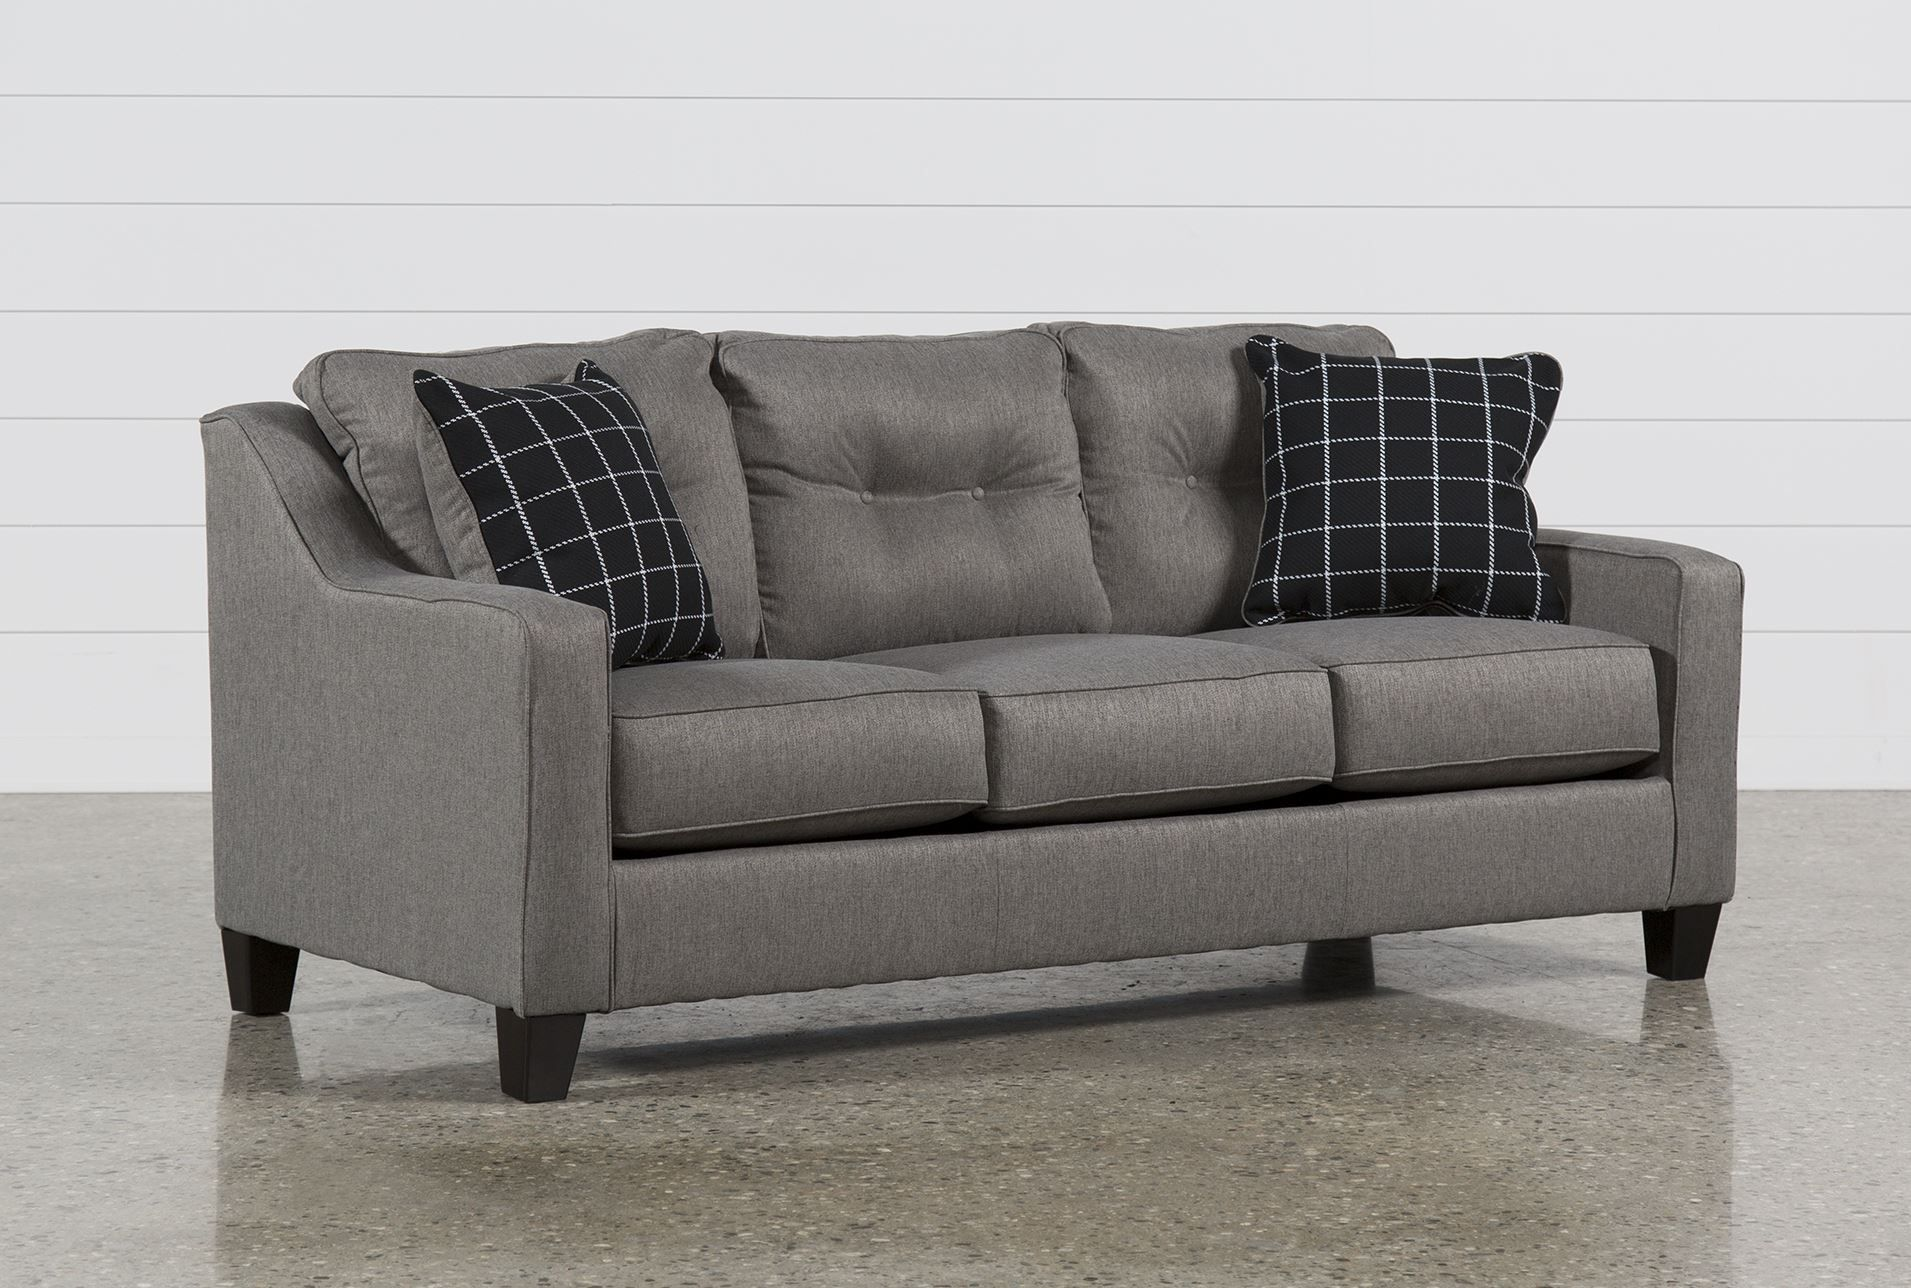 Swell Brindon Charcoal Queen Sofa Sleeper Sacred Space Queen Cjindustries Chair Design For Home Cjindustriesco